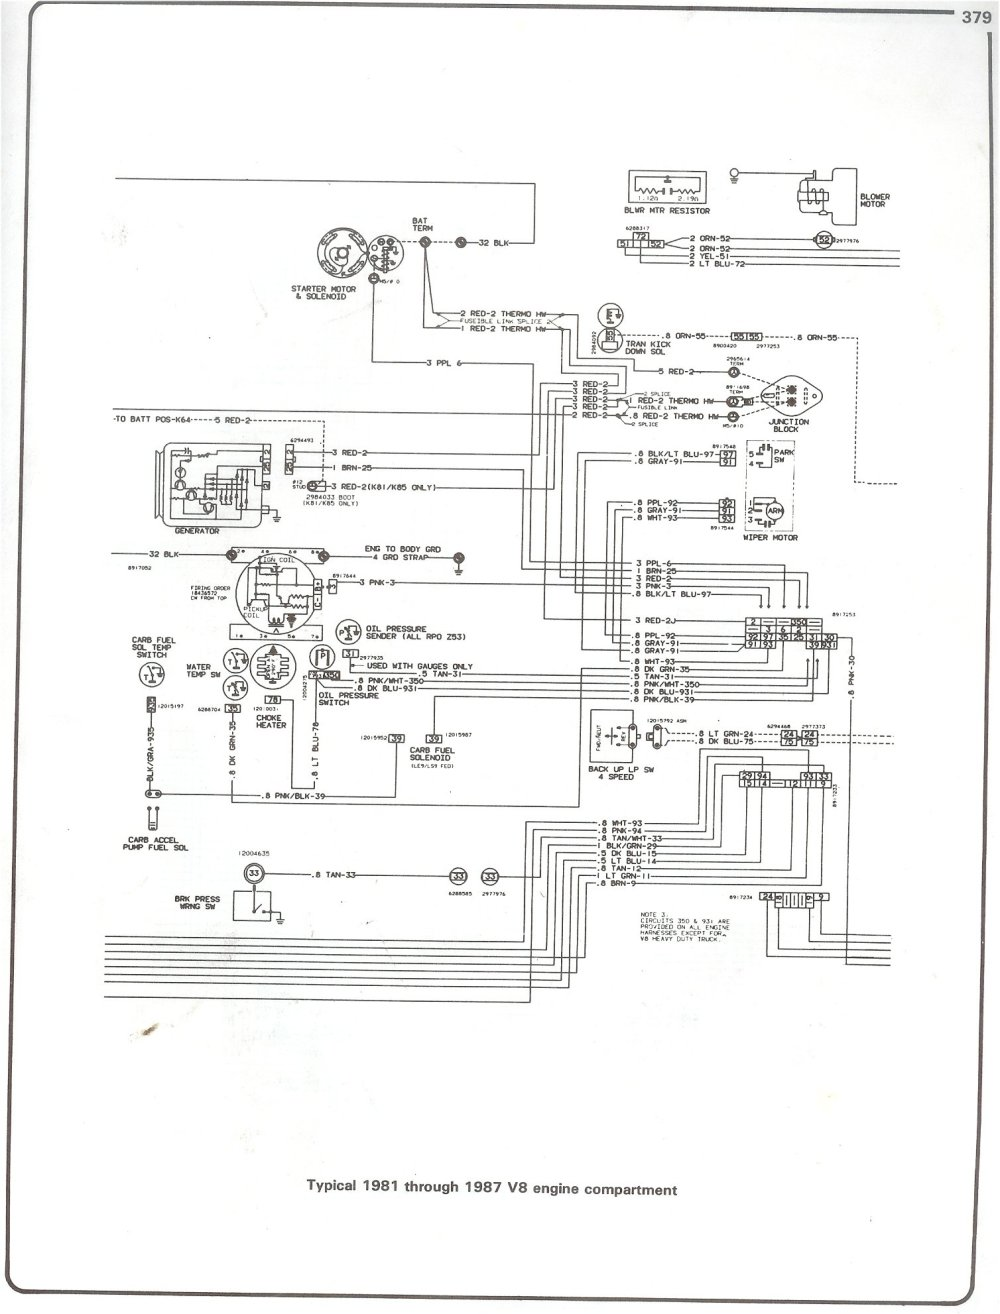 medium resolution of 86 suburban wiring diagram detailed schematics diagram rh lelandlutheran com 1990 gmc wiring diagrams 1990 chevy